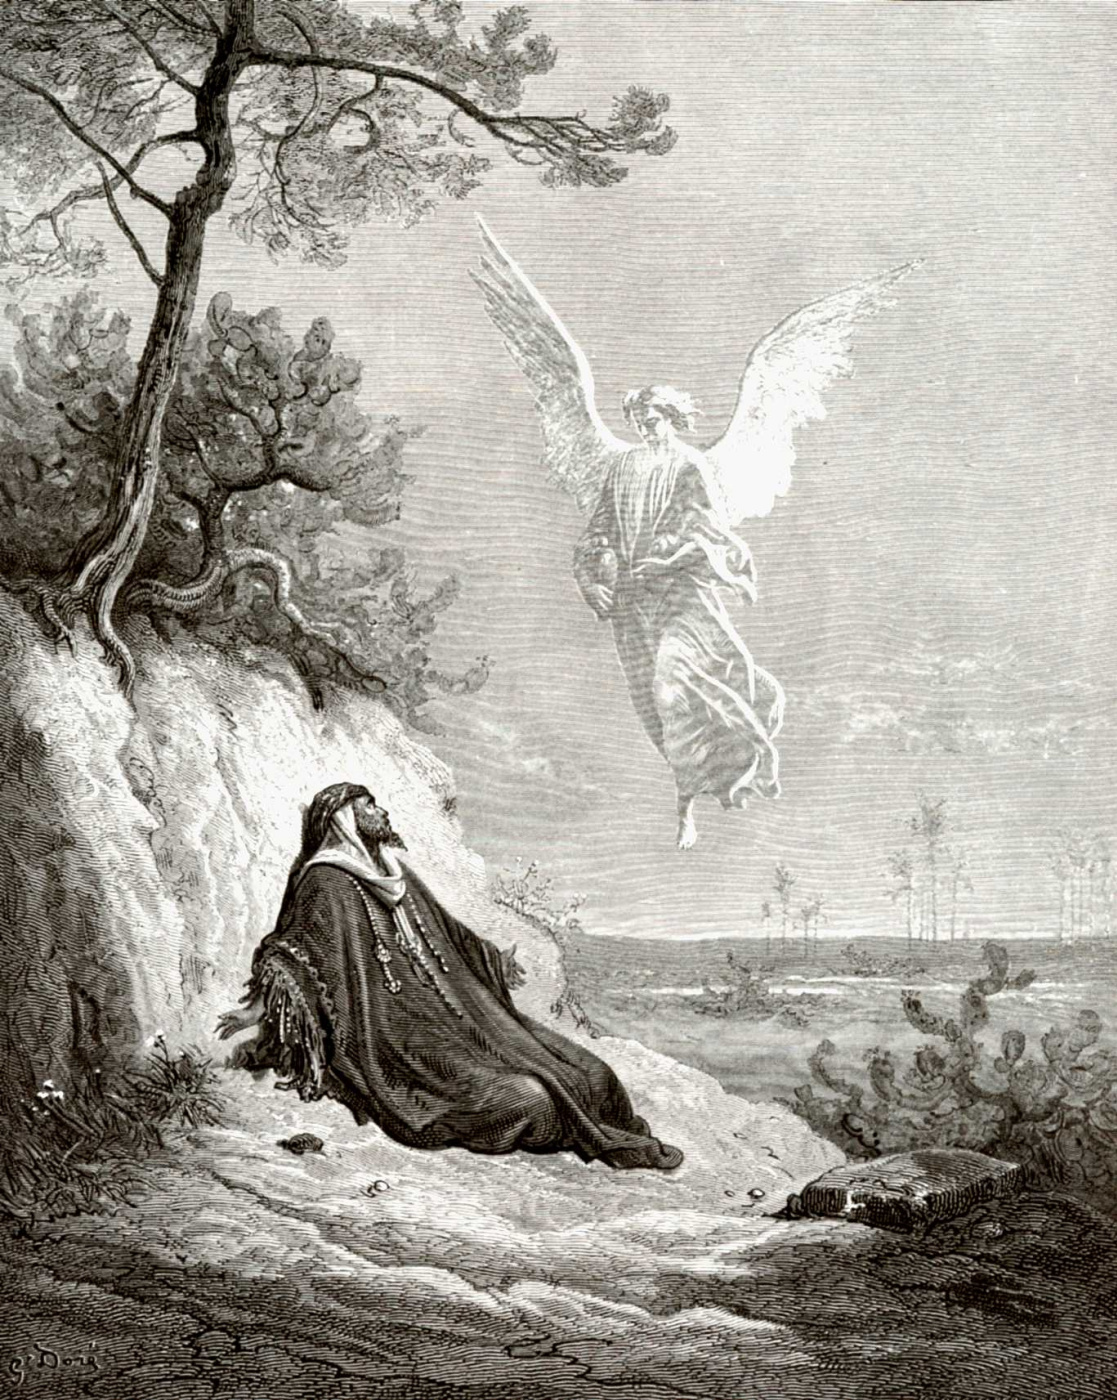 Paul Gustave Dore. Illustration to the Bible: Angel brings food and drink to the prophet Elijah